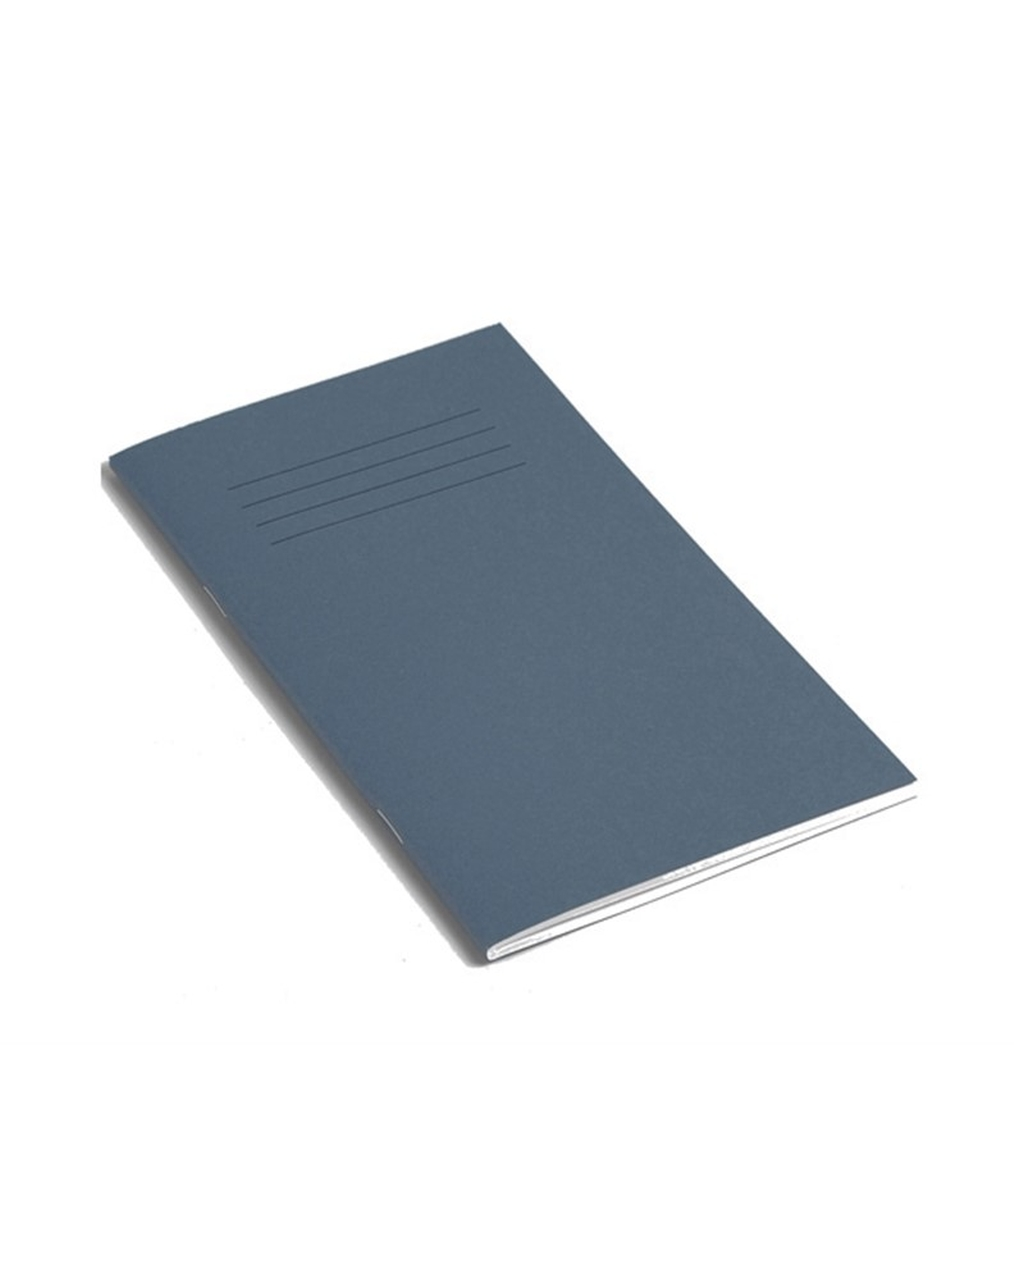 Exercise Book 8 x 4.5 (203 x 115mm) Dark Blue Cover 8mm Ruled 80 Pages